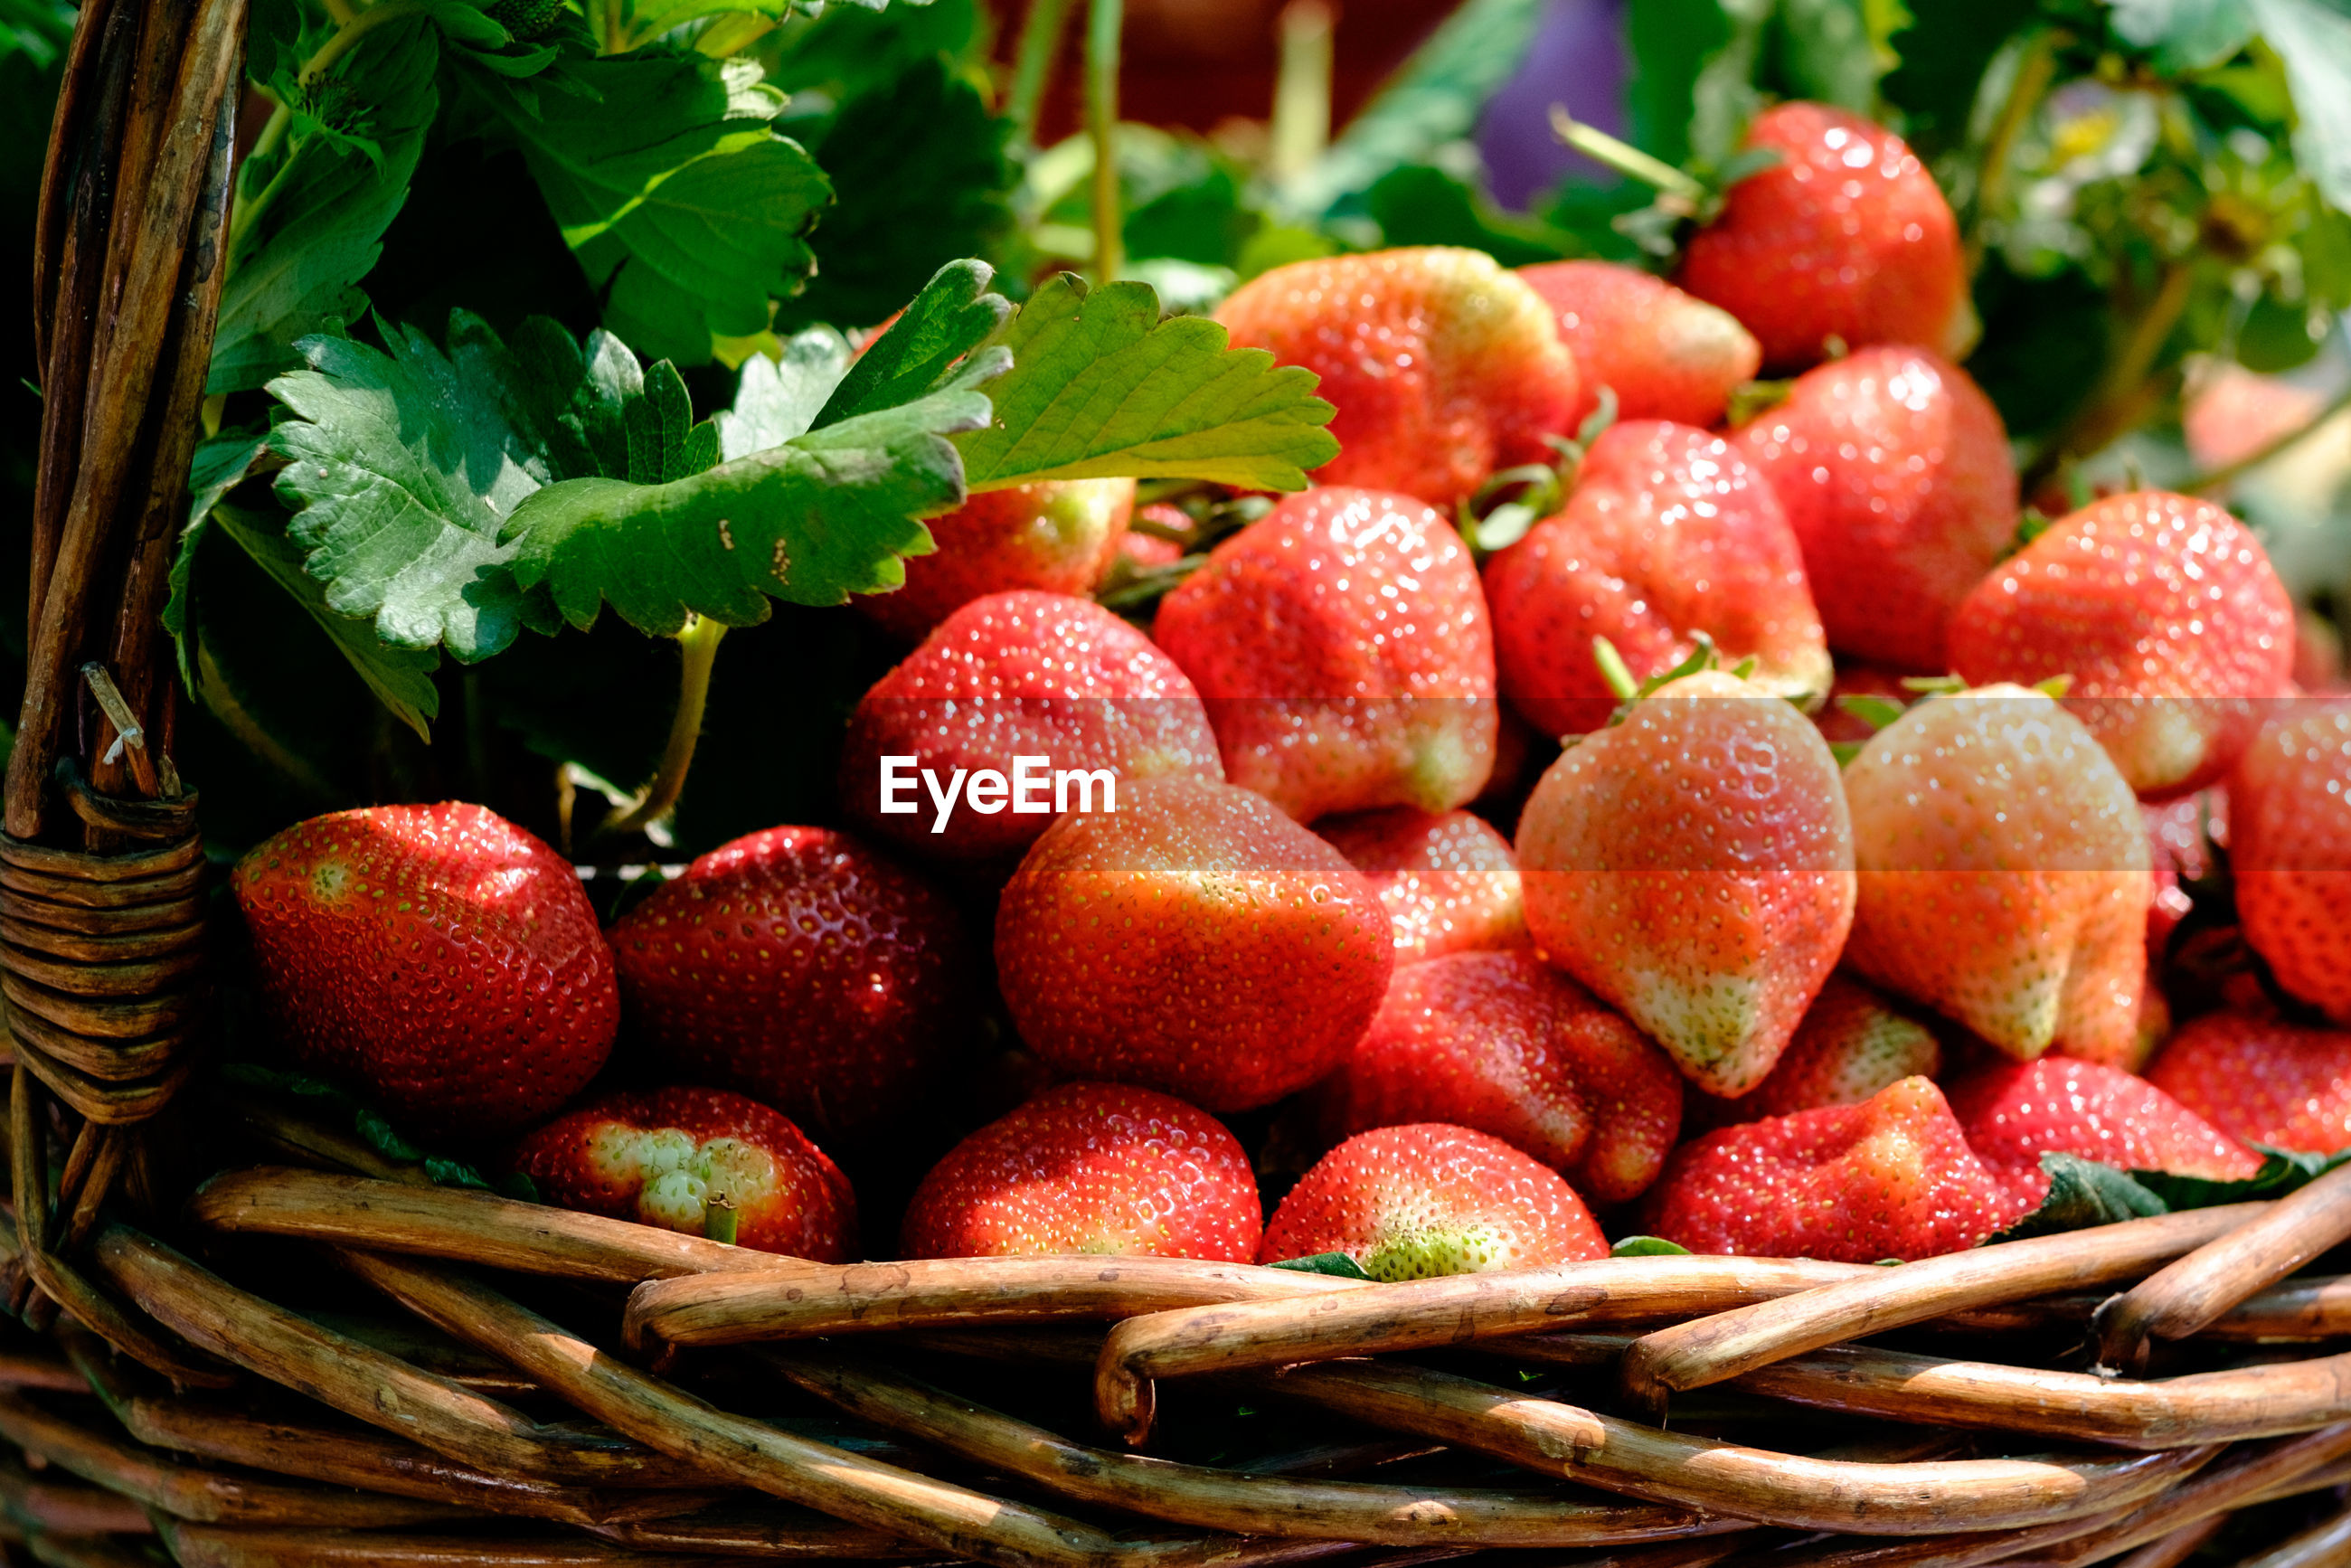 CLOSE-UP OF STRAWBERRIES IN BASKET OF RED BERRIES